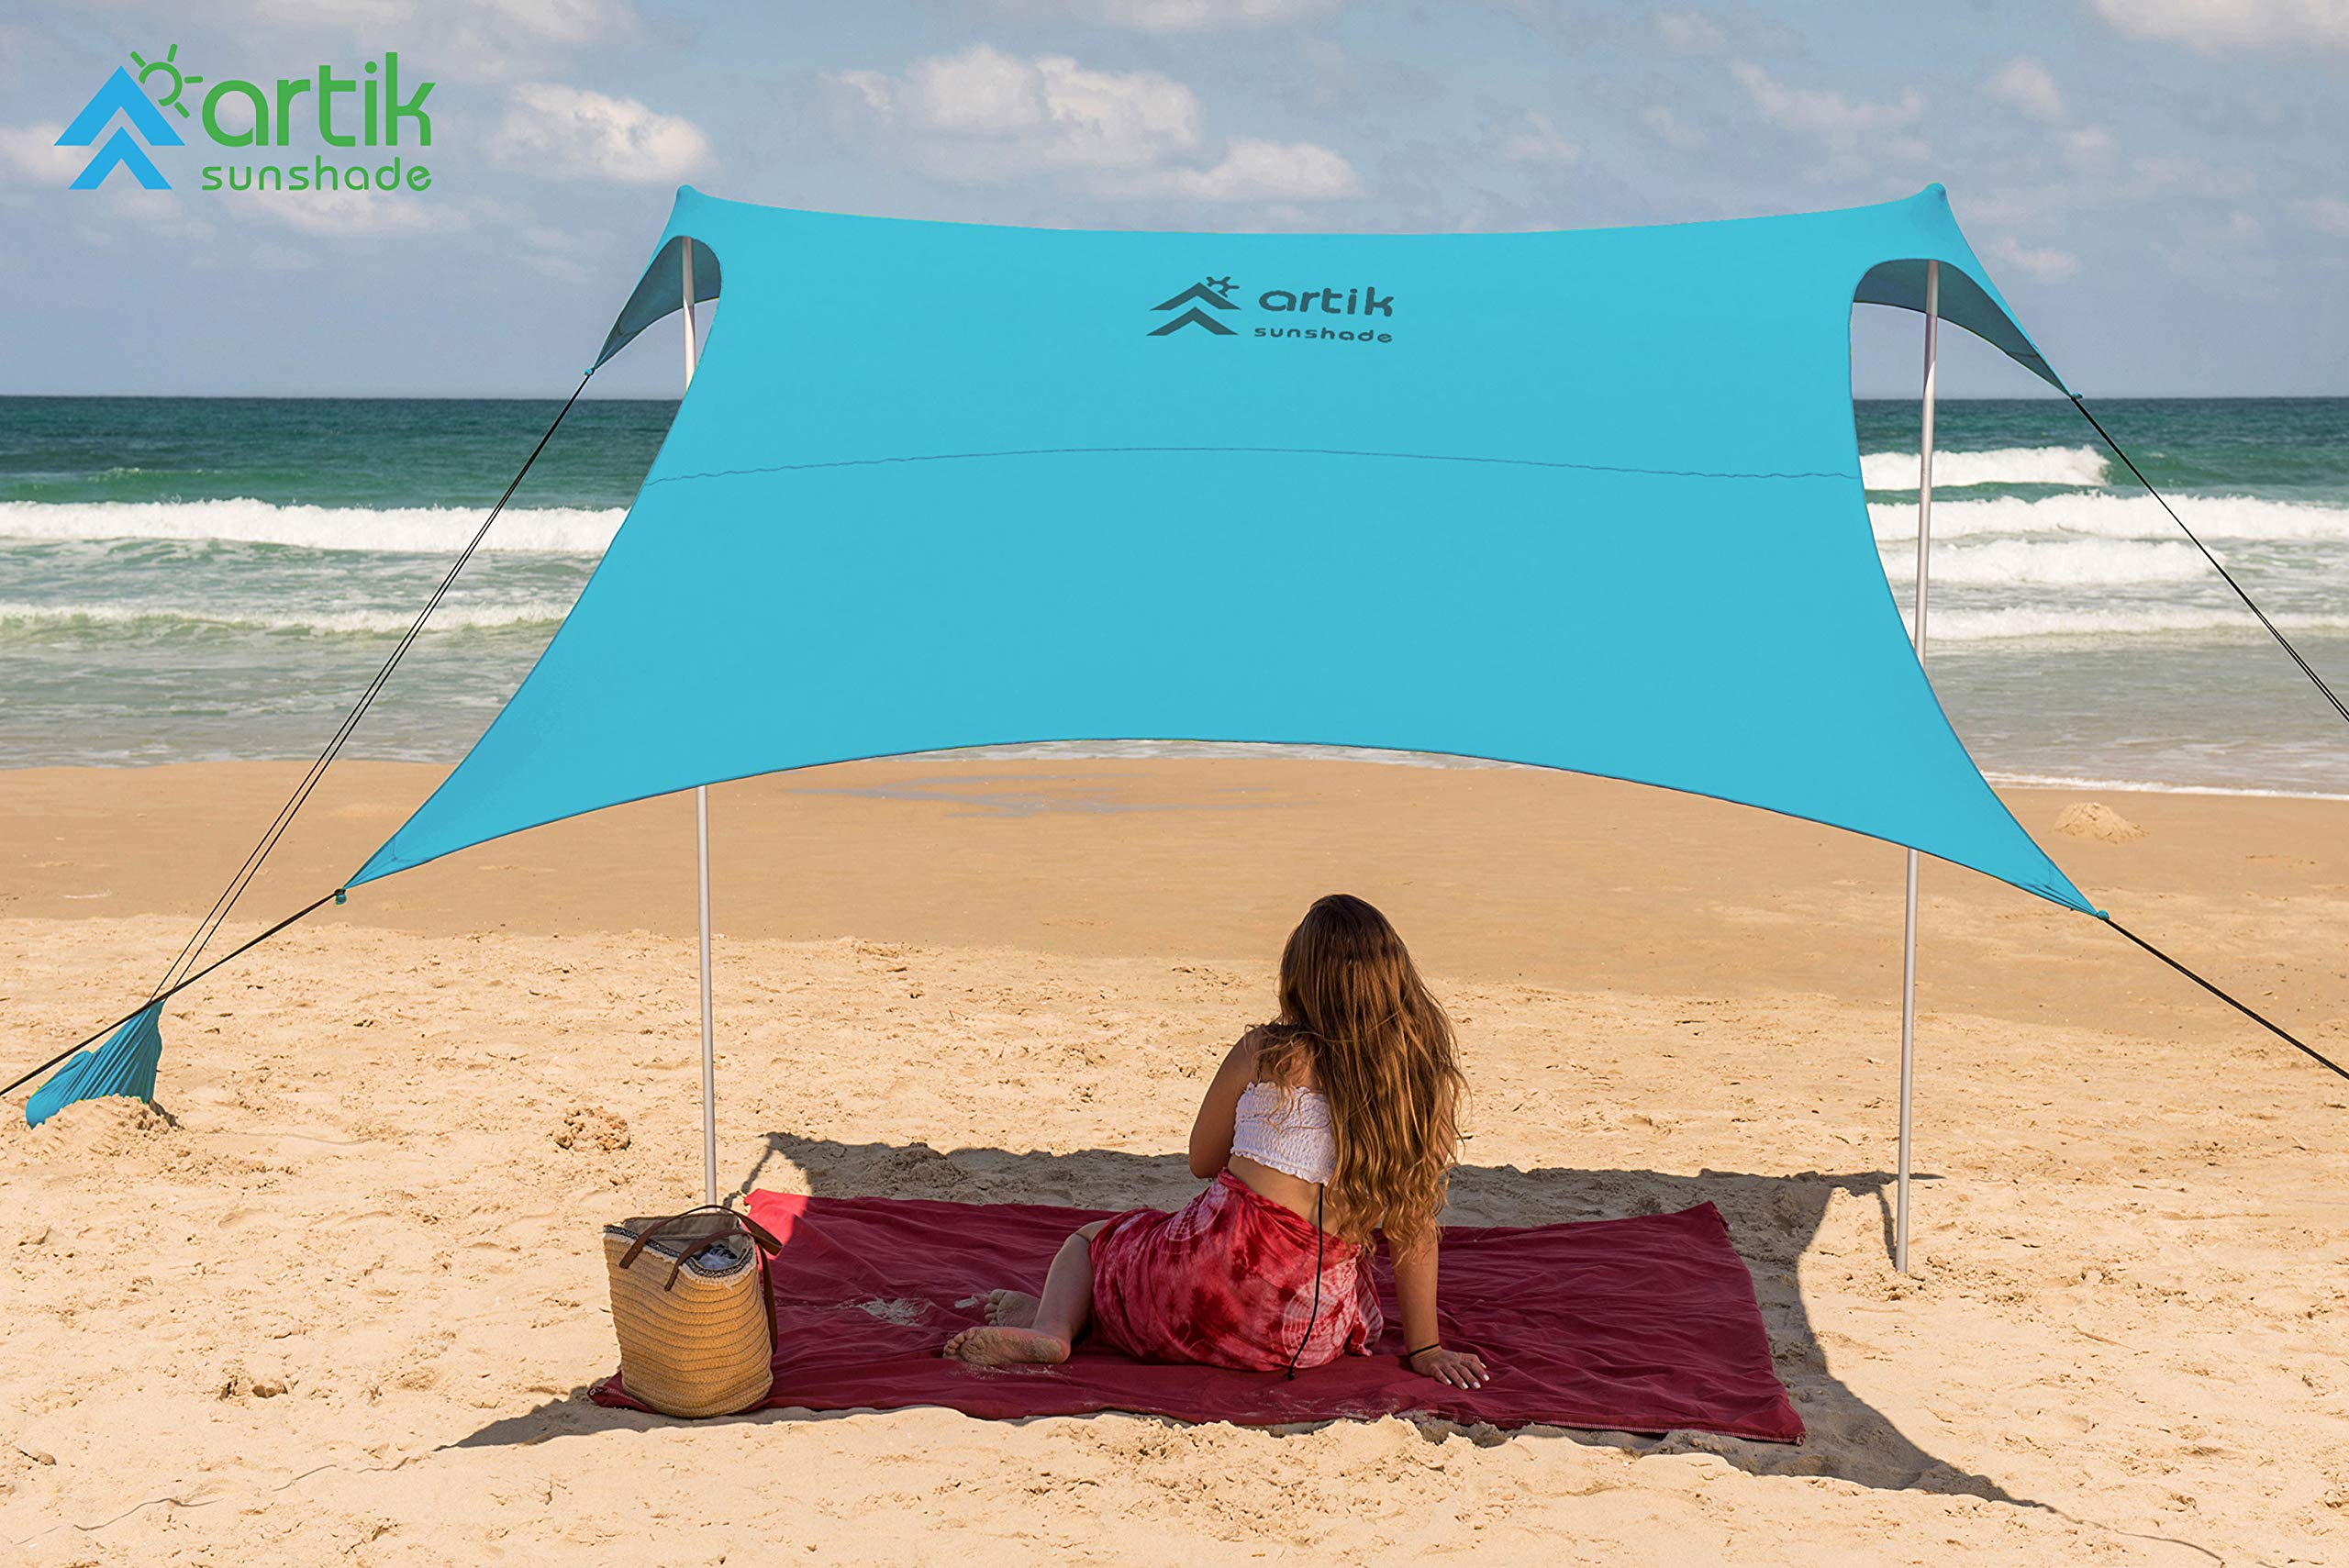 Family Beach Sunshade, with Sandbag Anchors, Simple & Versatile. SPF50, Lycra SunShelter for The Beach,Camping and Outdoors. (Teal, Large) by ARTIK SUNSHADE